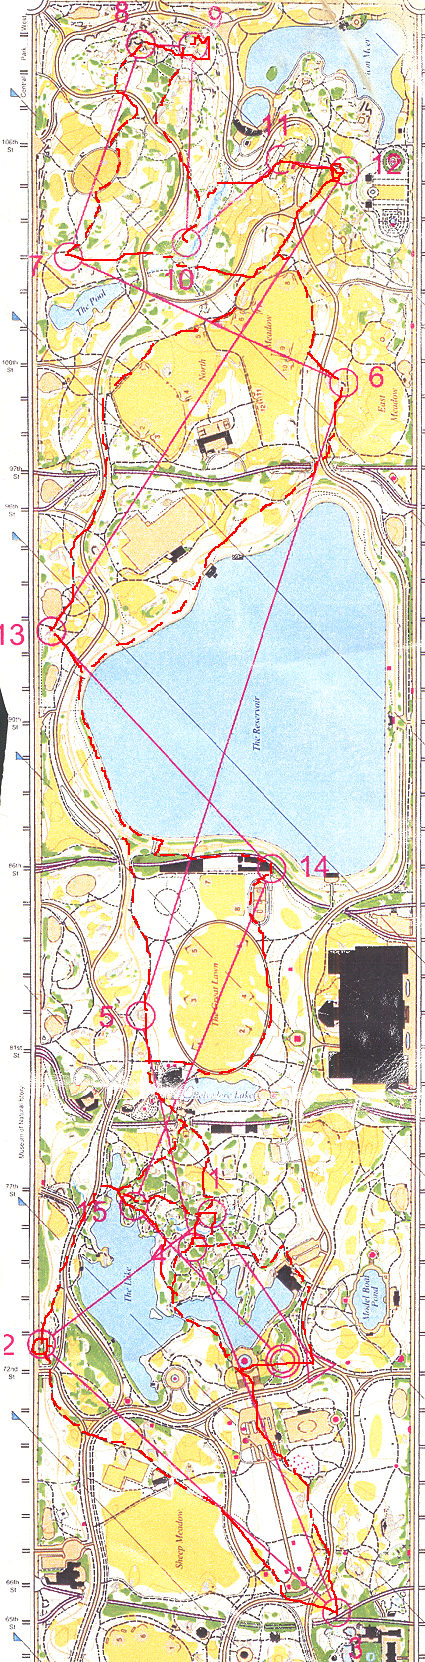 Orienteering map in Central Park